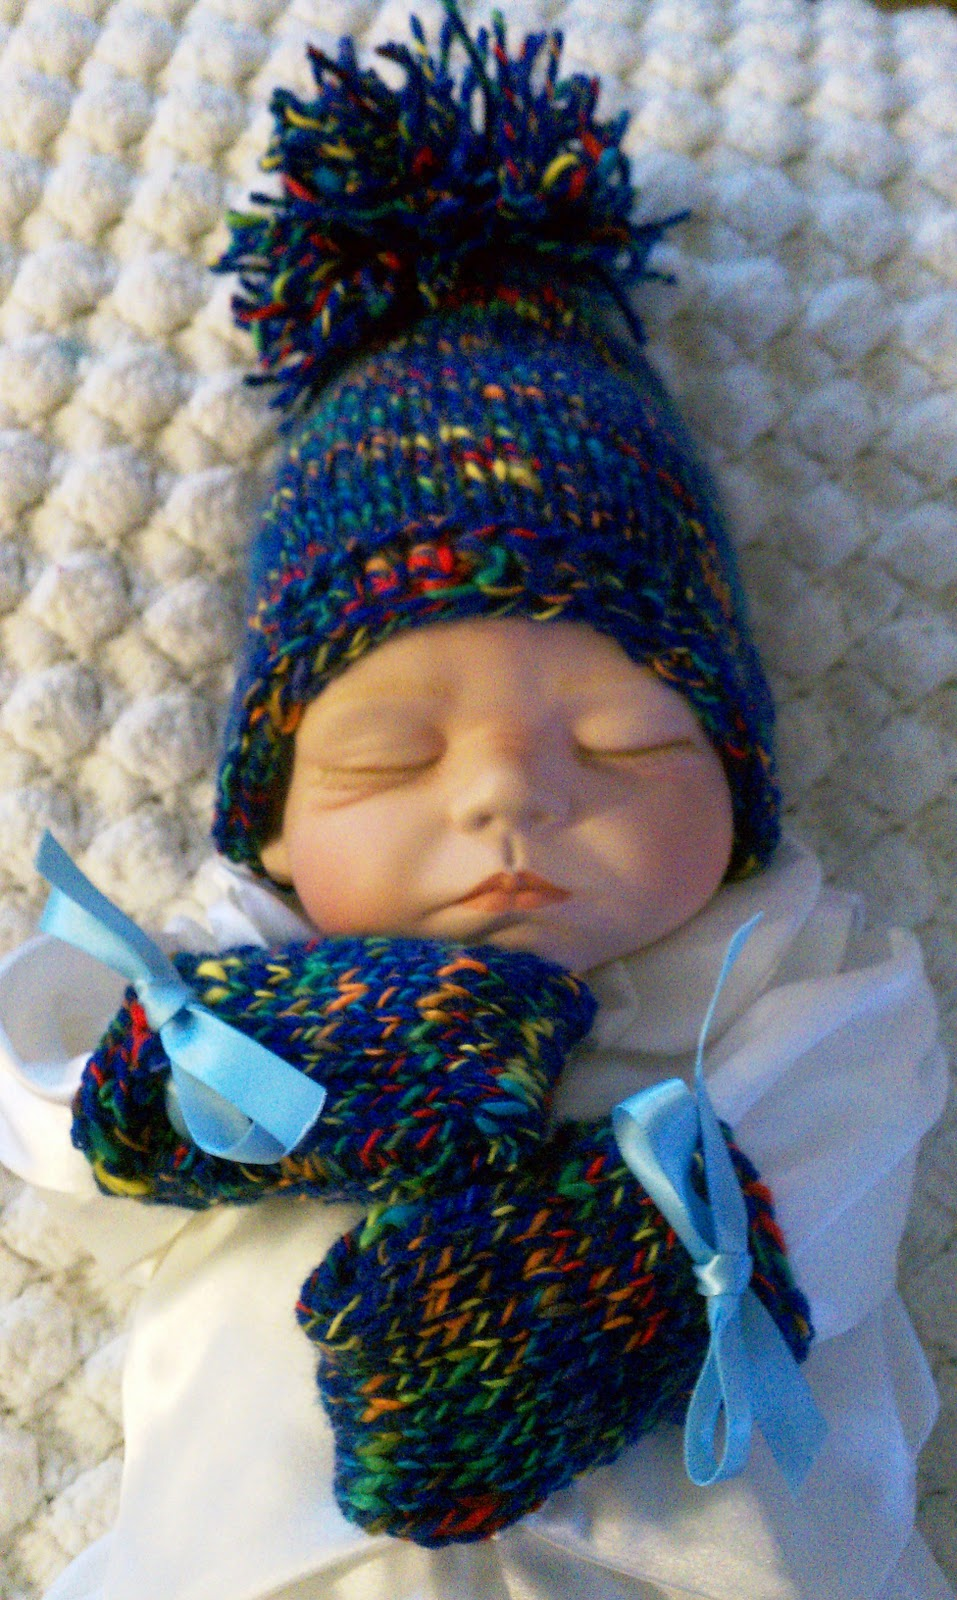 Knitted Toy Pattern : Janet Maries Crochet and Knit Projects and Free Patterns: FREE KNIT PATT...